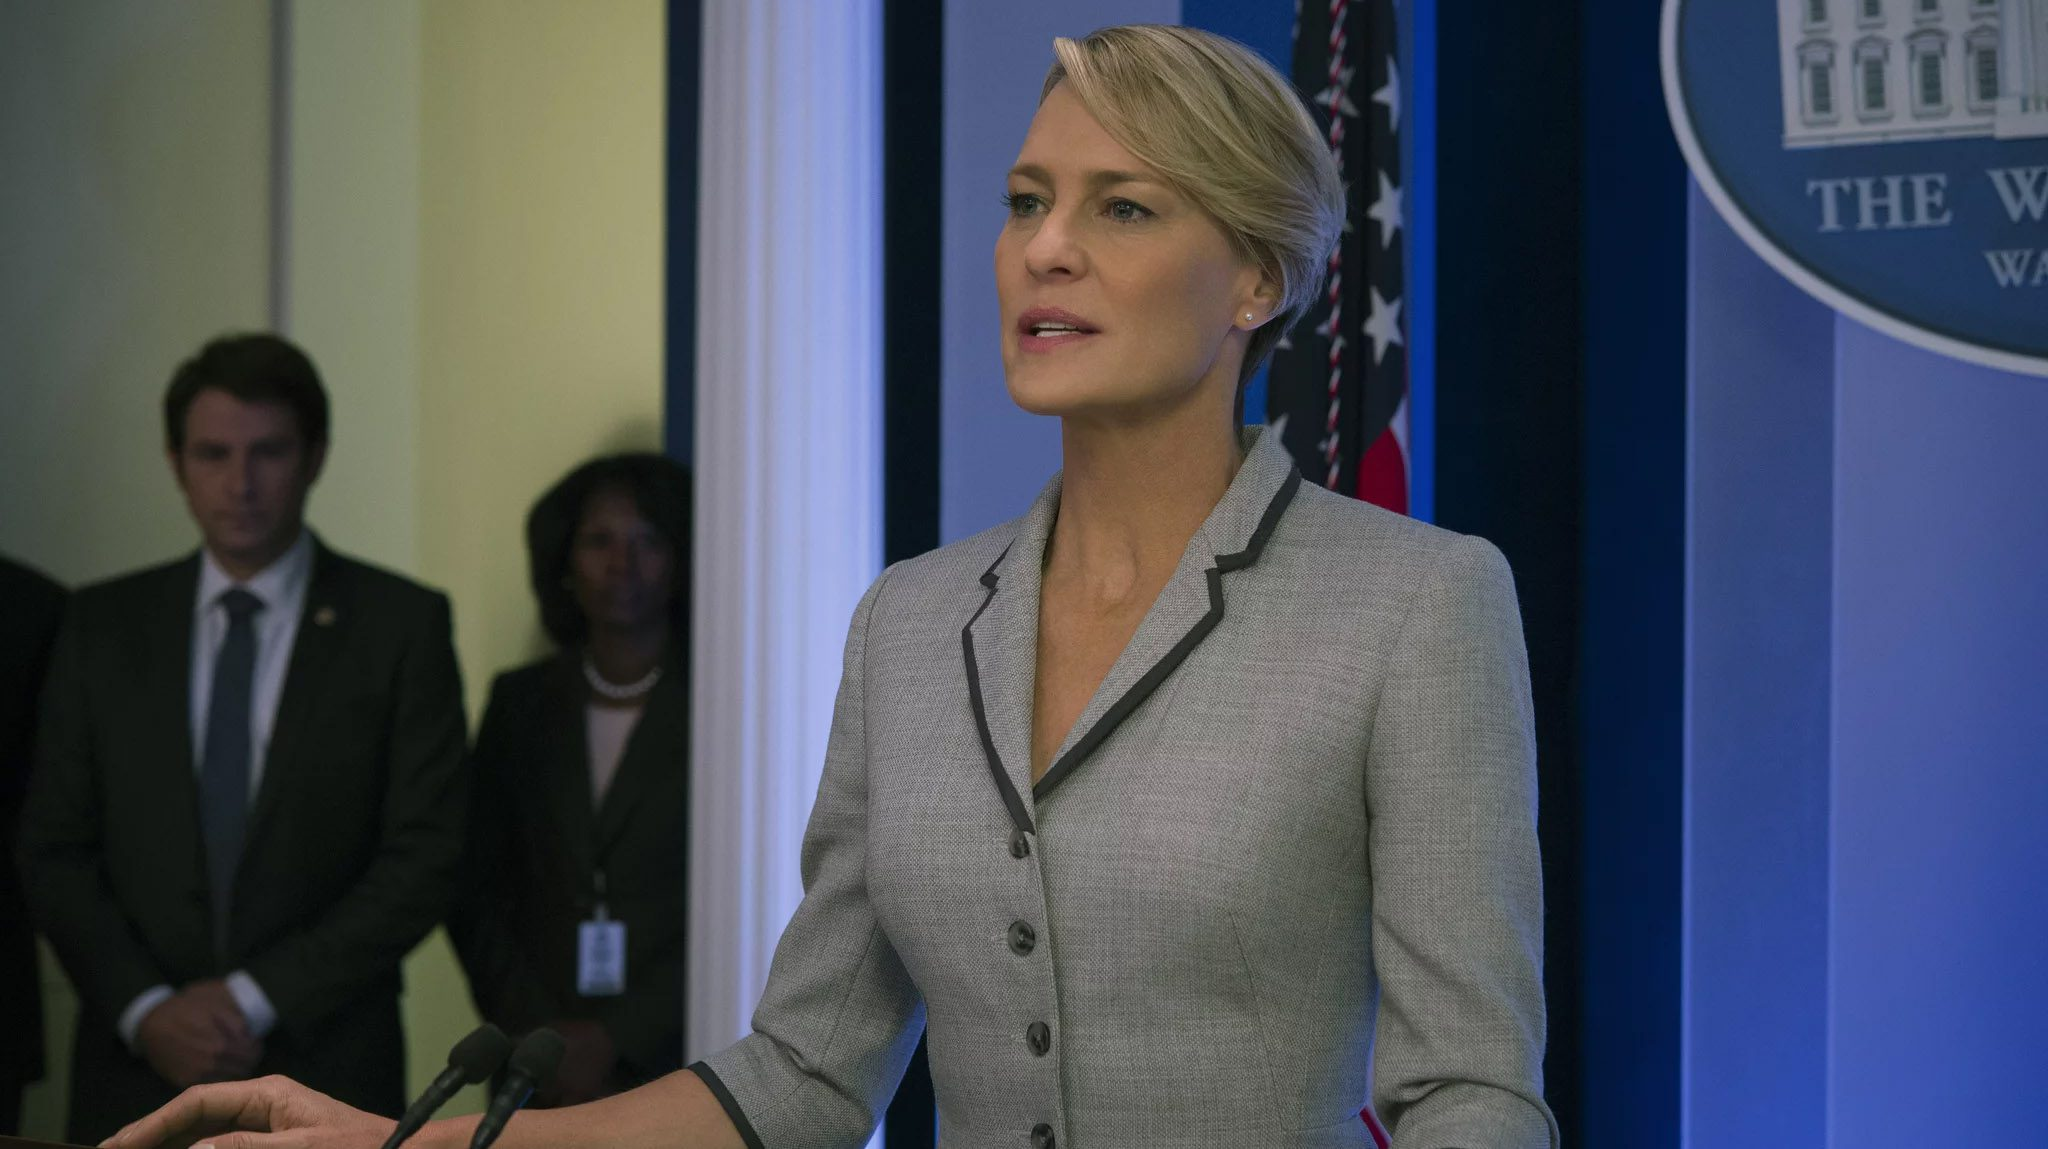 For five long seasons, Netflix's hit political drama 'House of Cards' has seen Claire & Frank Underwood at the helm of the US government. That's all set to change with the forthcoming final season.